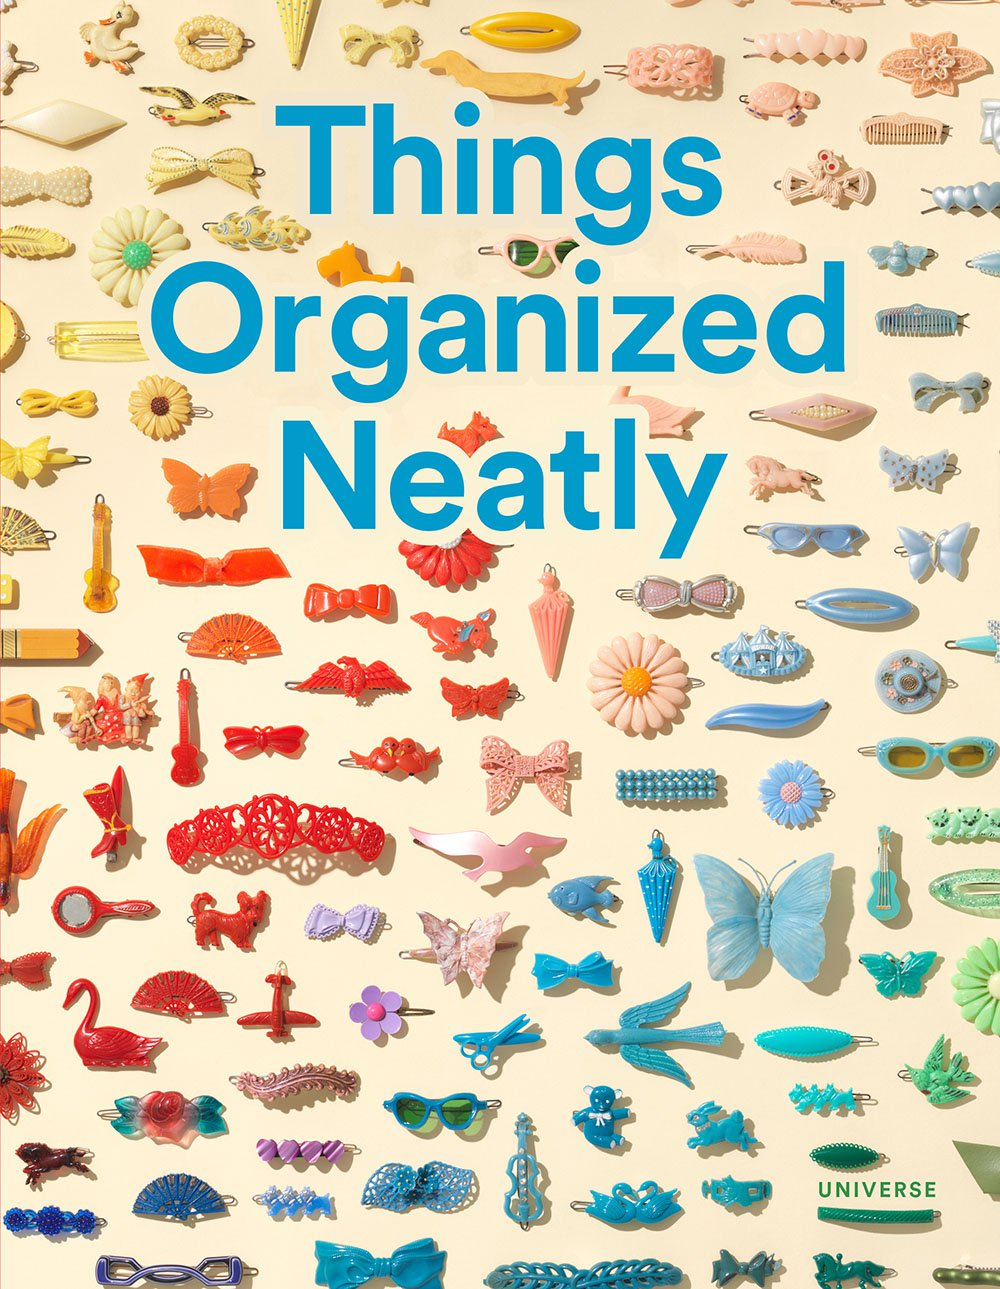 Things Organized Neatly 7